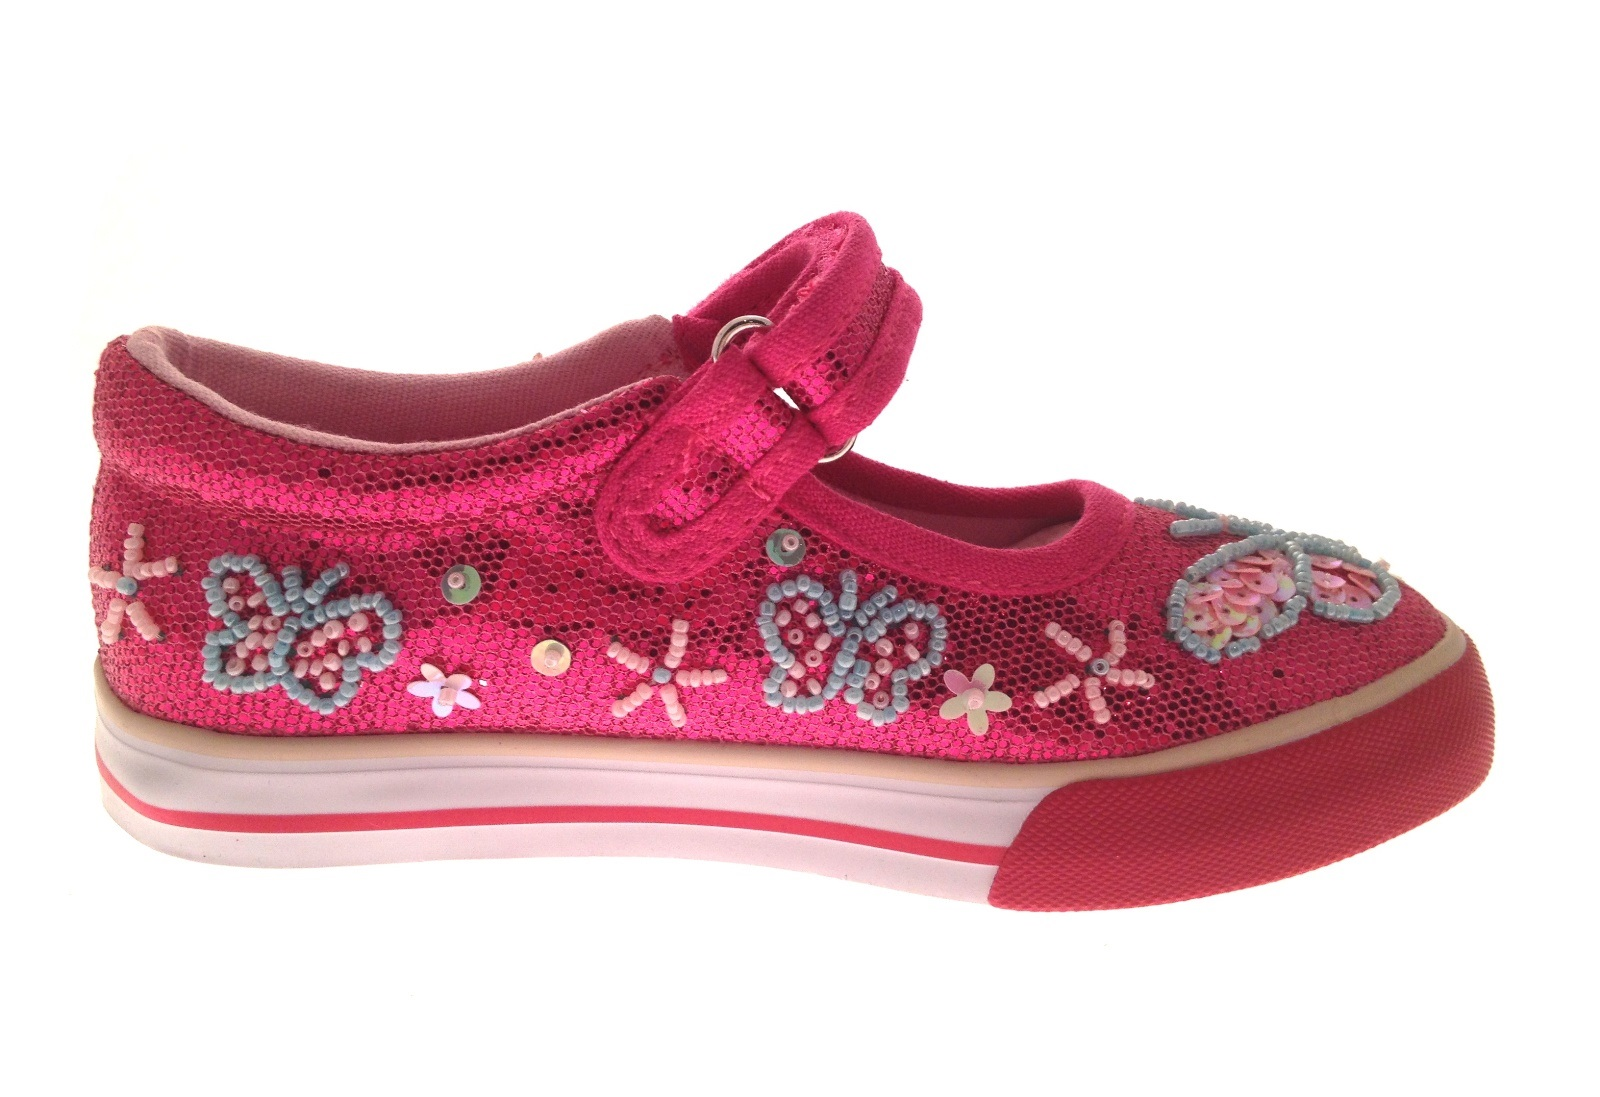 Enjoy free shipping and easy returns every day at Kohl's. Find great deals on Toddler Girl Shoes at Kohl's today!